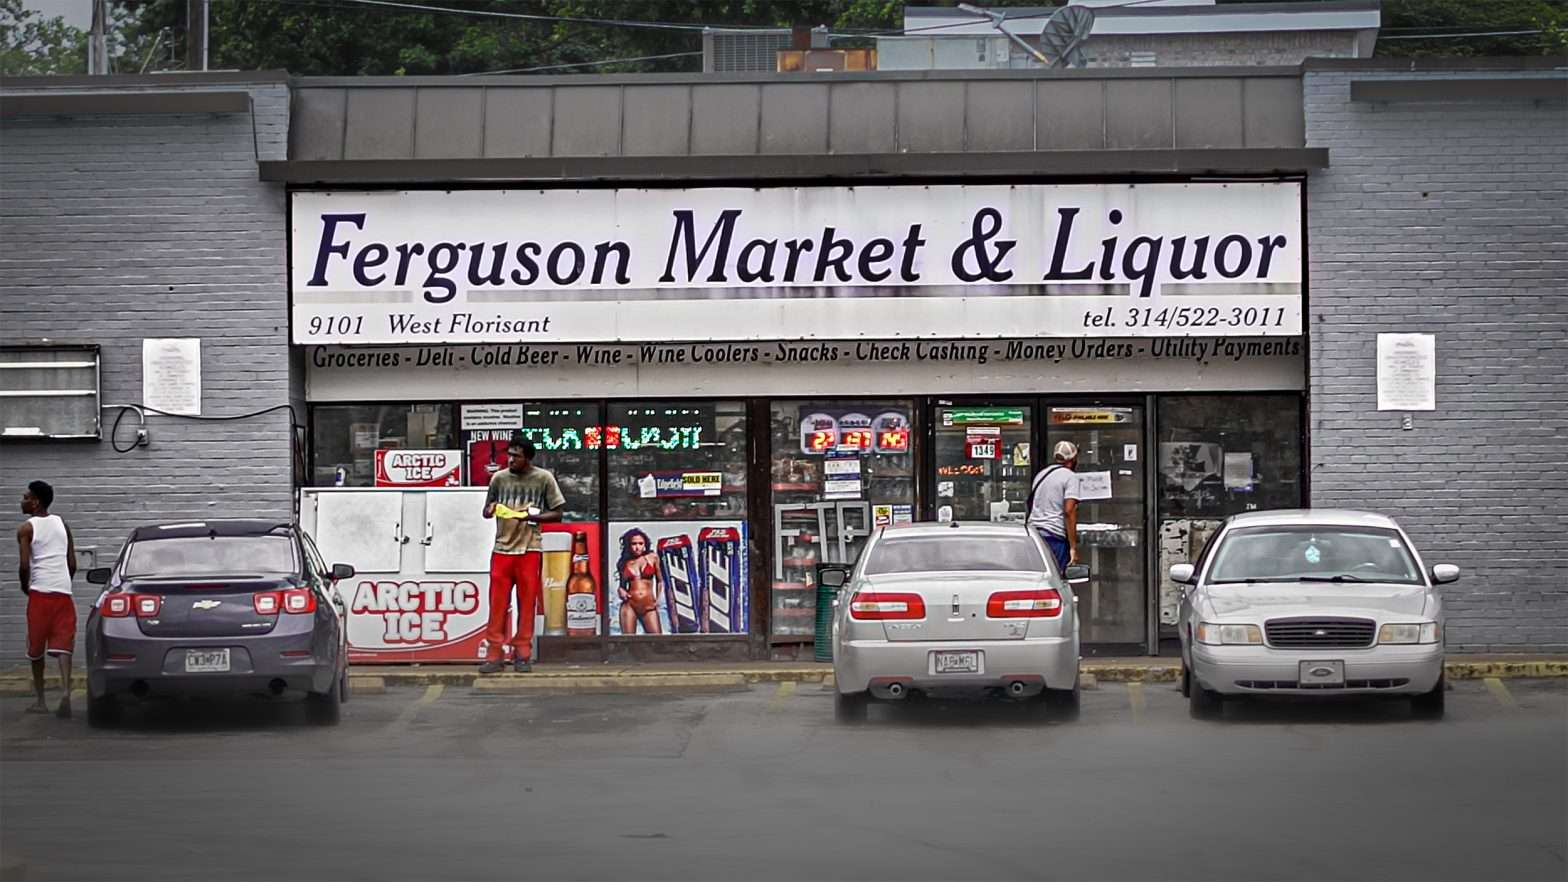 Ferguson Supermarket (Ferguson Market & Liquor) W. Florissant Road on August 31, 2020. credit craig currie